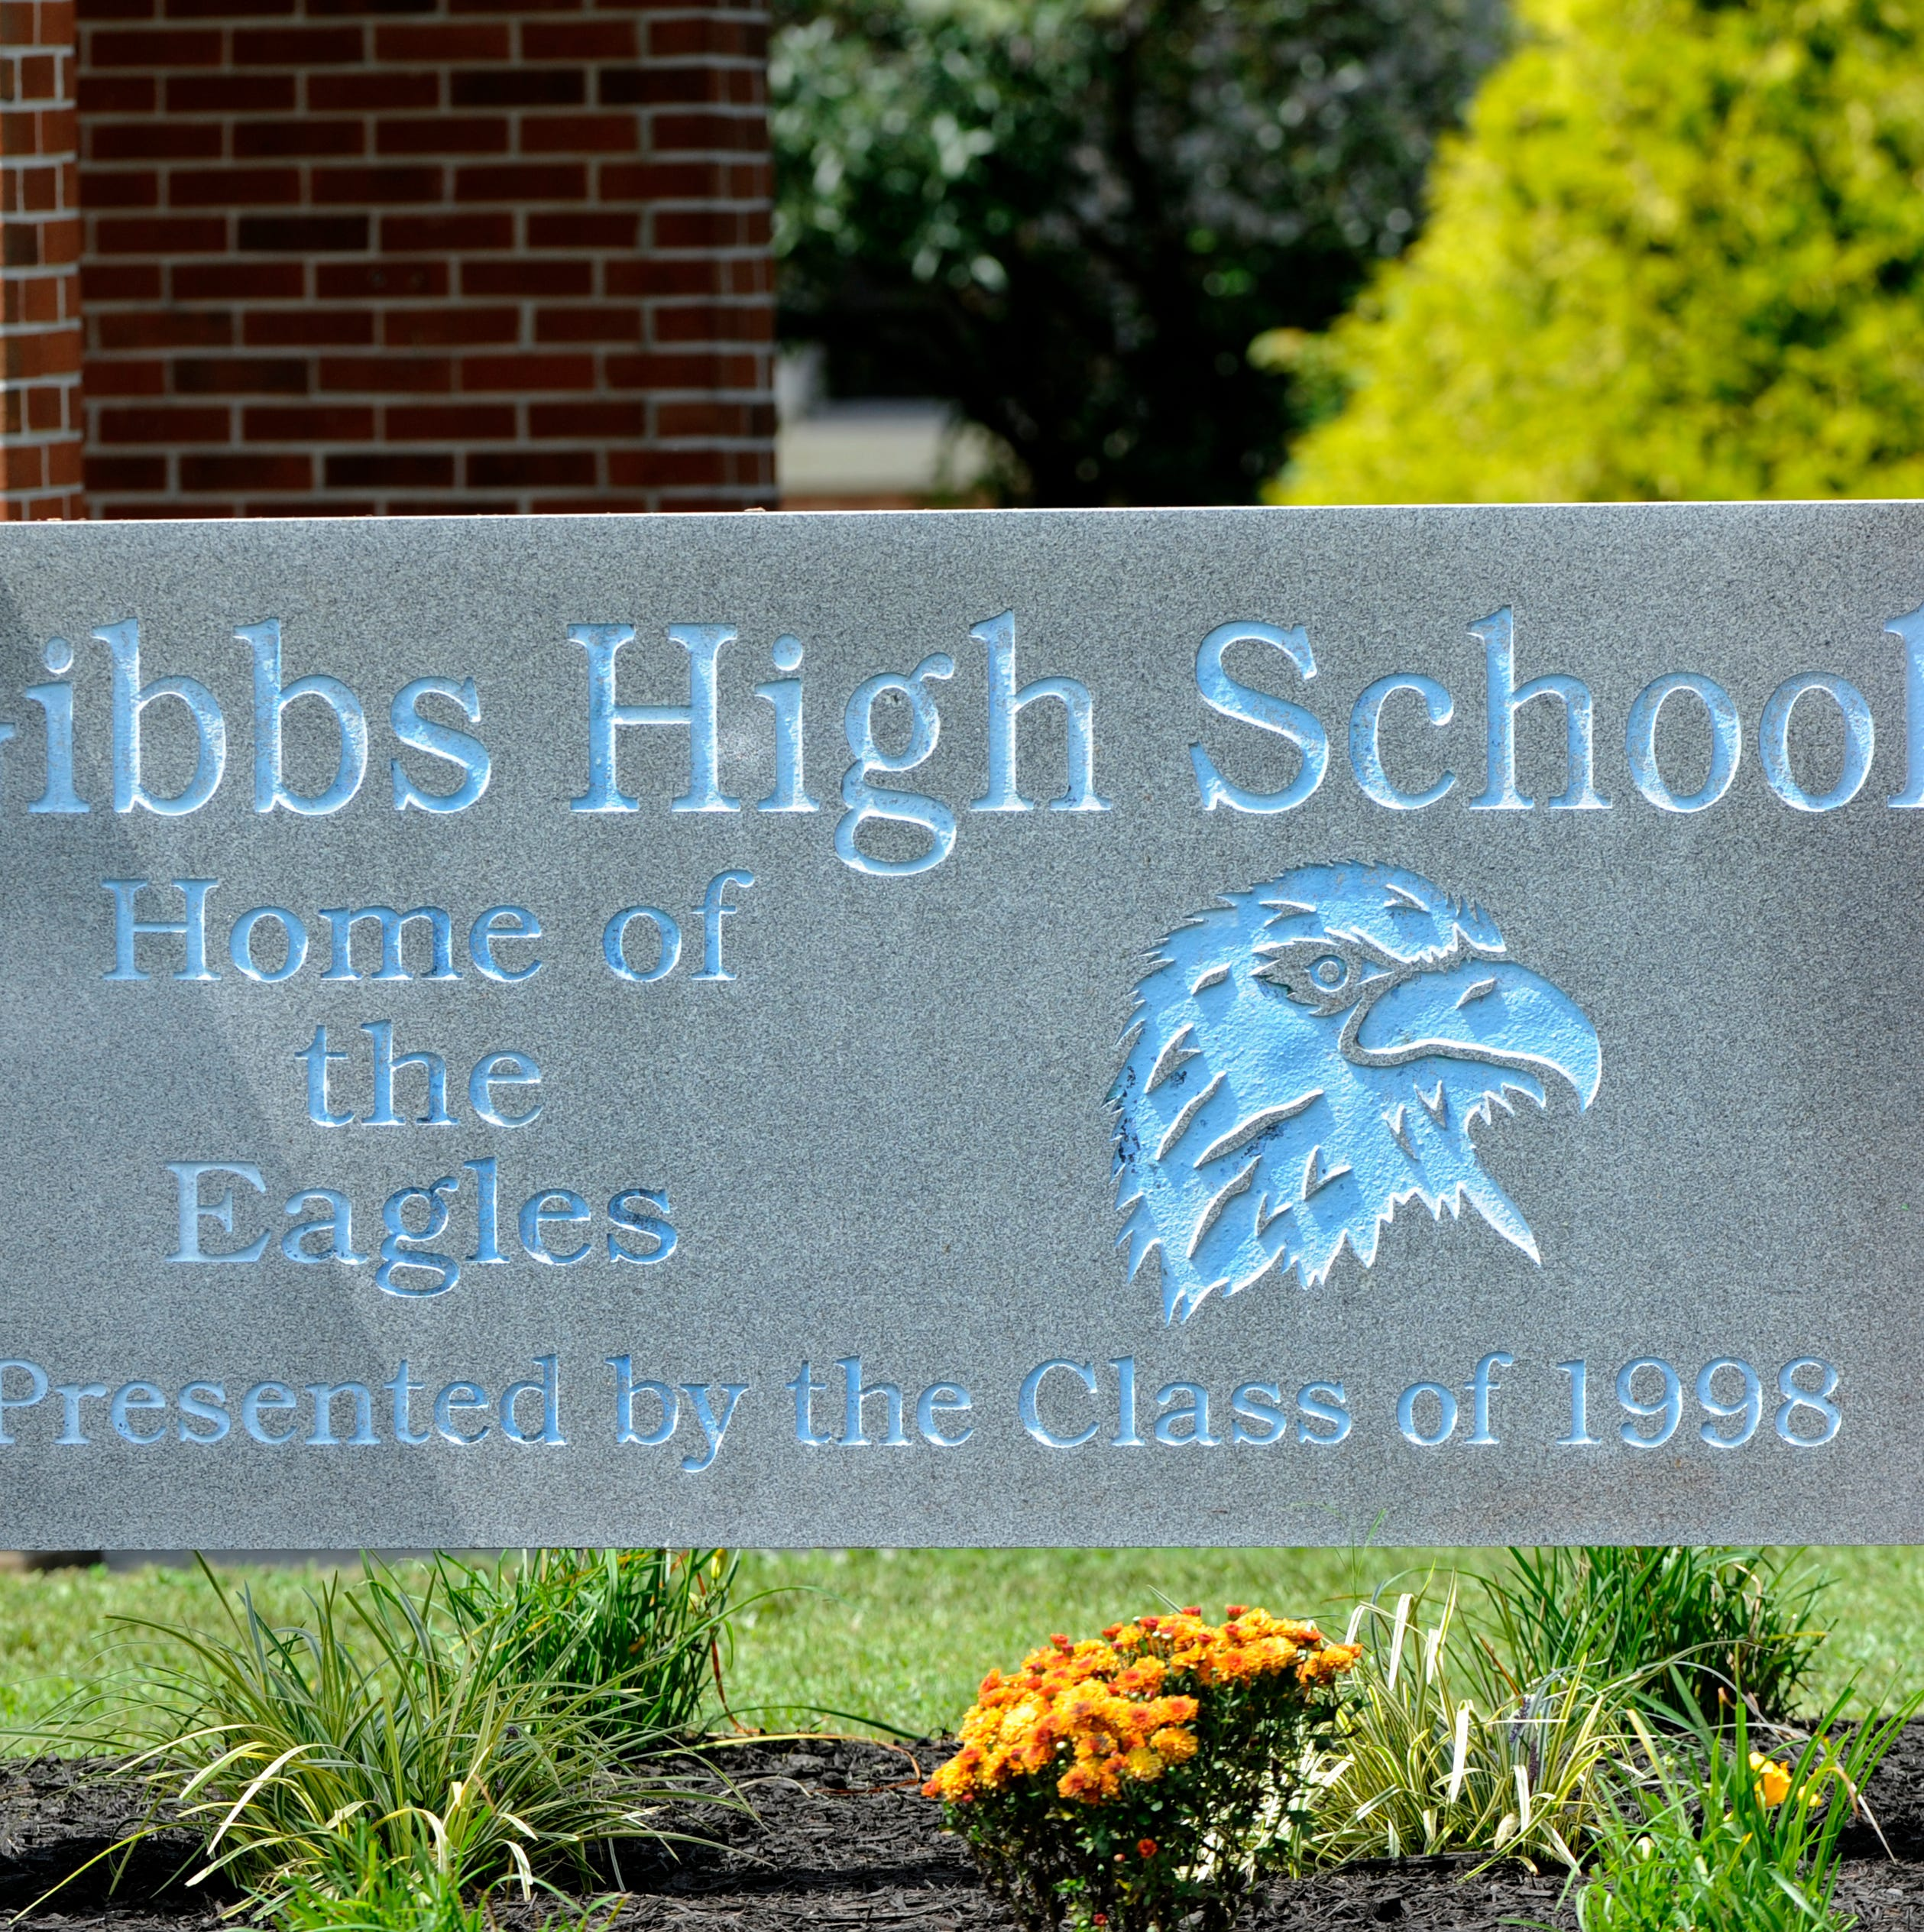 Teen girl found dead of apparent suicide outside Gibbs High School, sheriff's office says